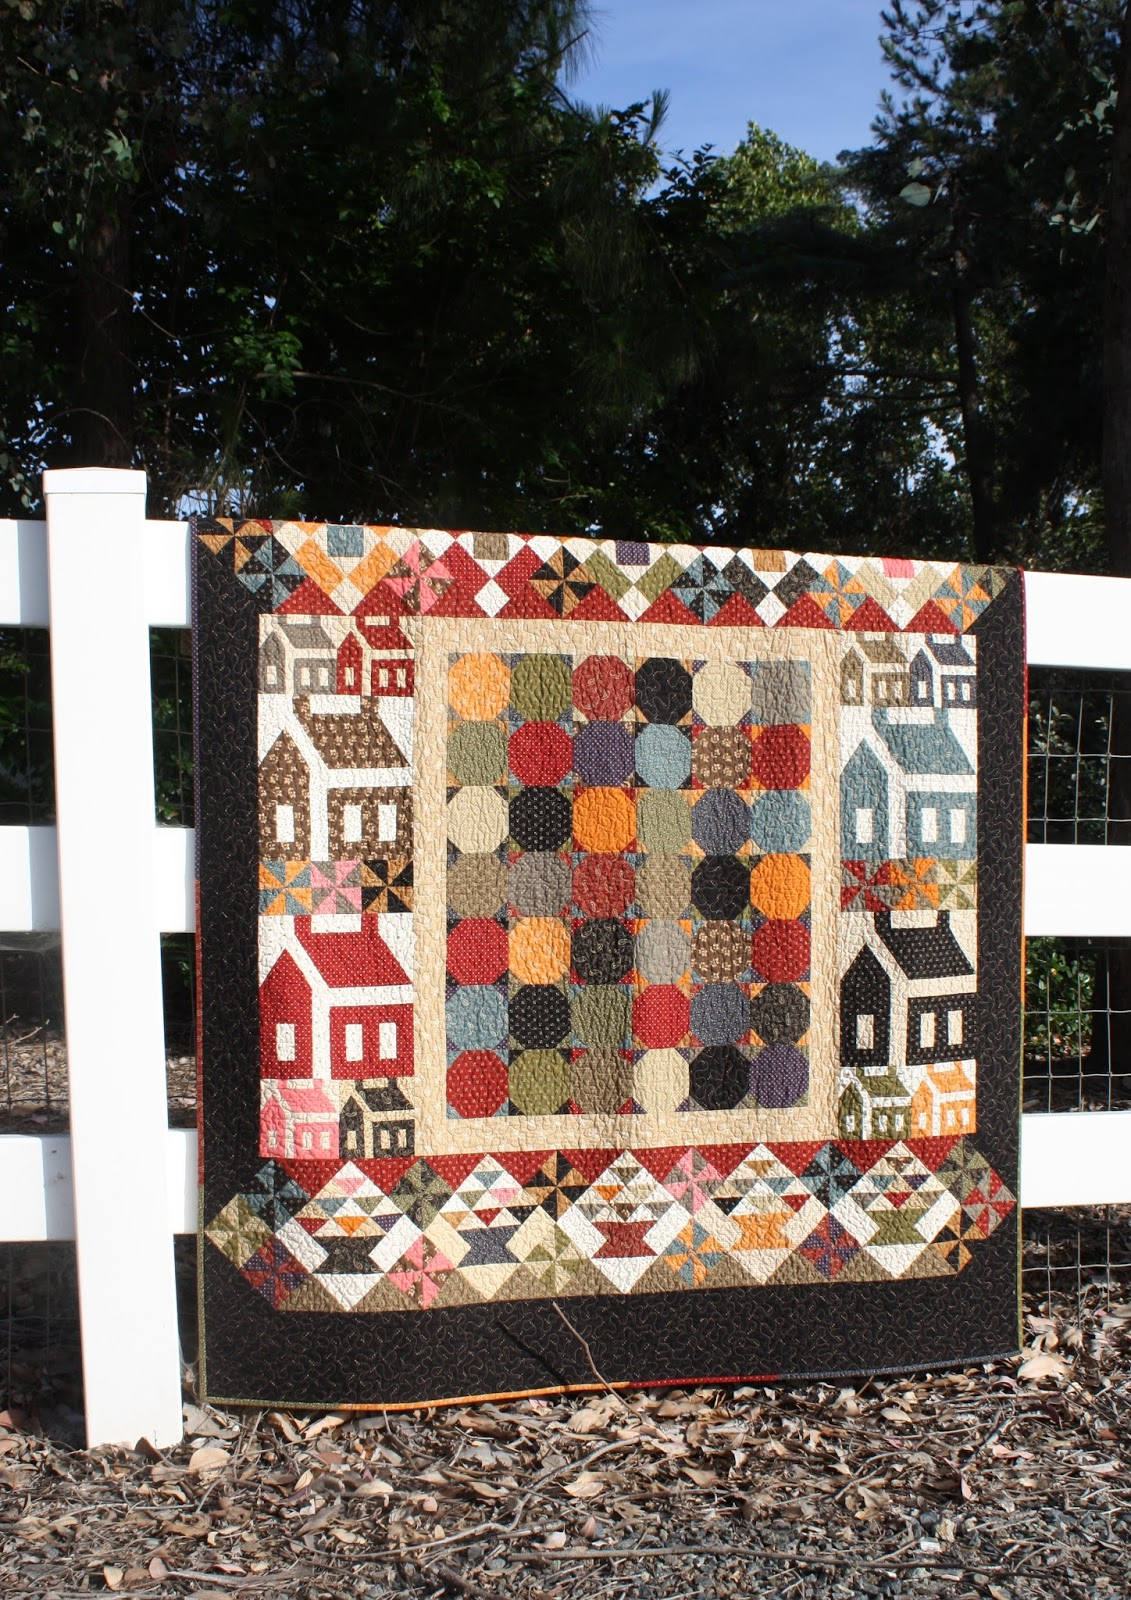 Temecula Quilt Co. - Quilt Shop in Temecula, California | quilty ... : temecula quilt company - Adamdwight.com